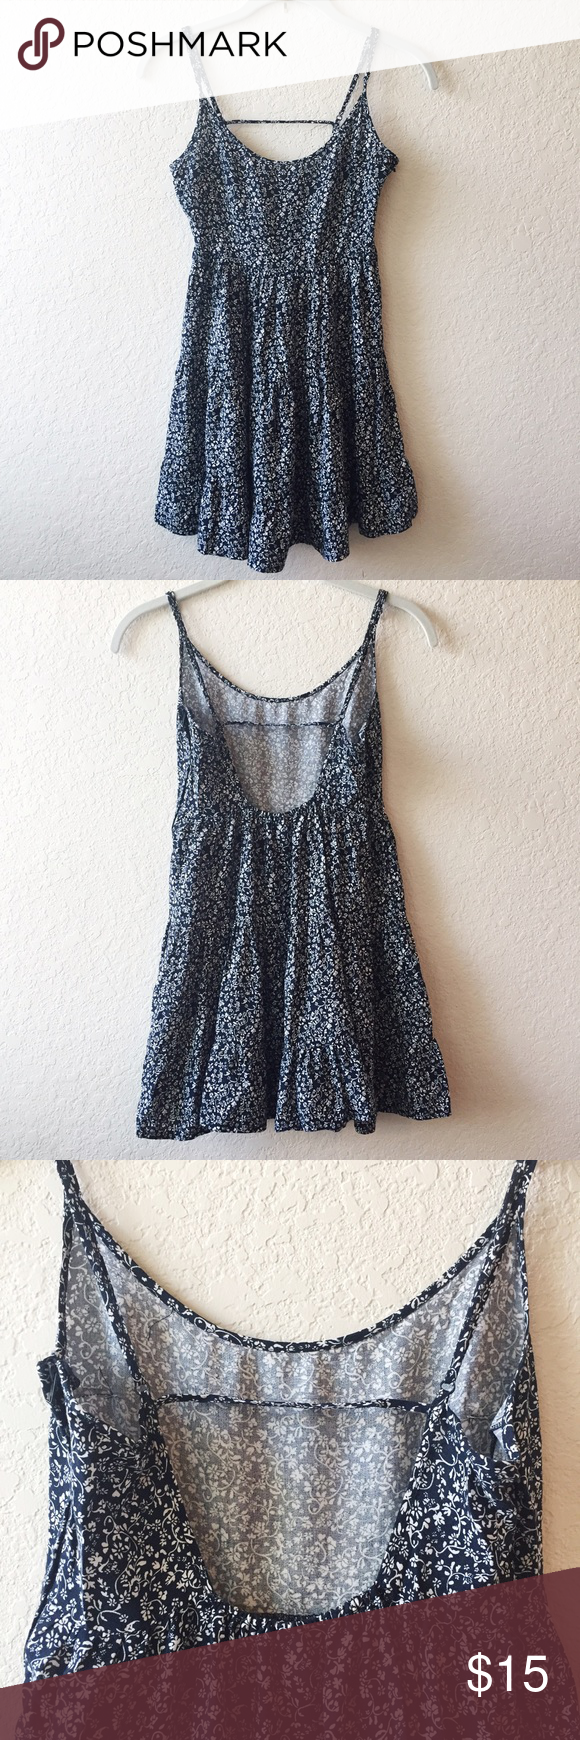 H&M Open-Back Smock Dress Hardly worn! Super cute navy dress with white floral print. Hidden side zipper, adjustable straps for desired length. A few stray strands of fabric (as shown in picture) but not noticeable because of the print. Love this because it looks like a Brandy Melville Jada dress, but it didn't fit me very comfortably on top (size 32D). Would be perfect for someone who is A-C. 100% viscose. H&M Dresses Mini